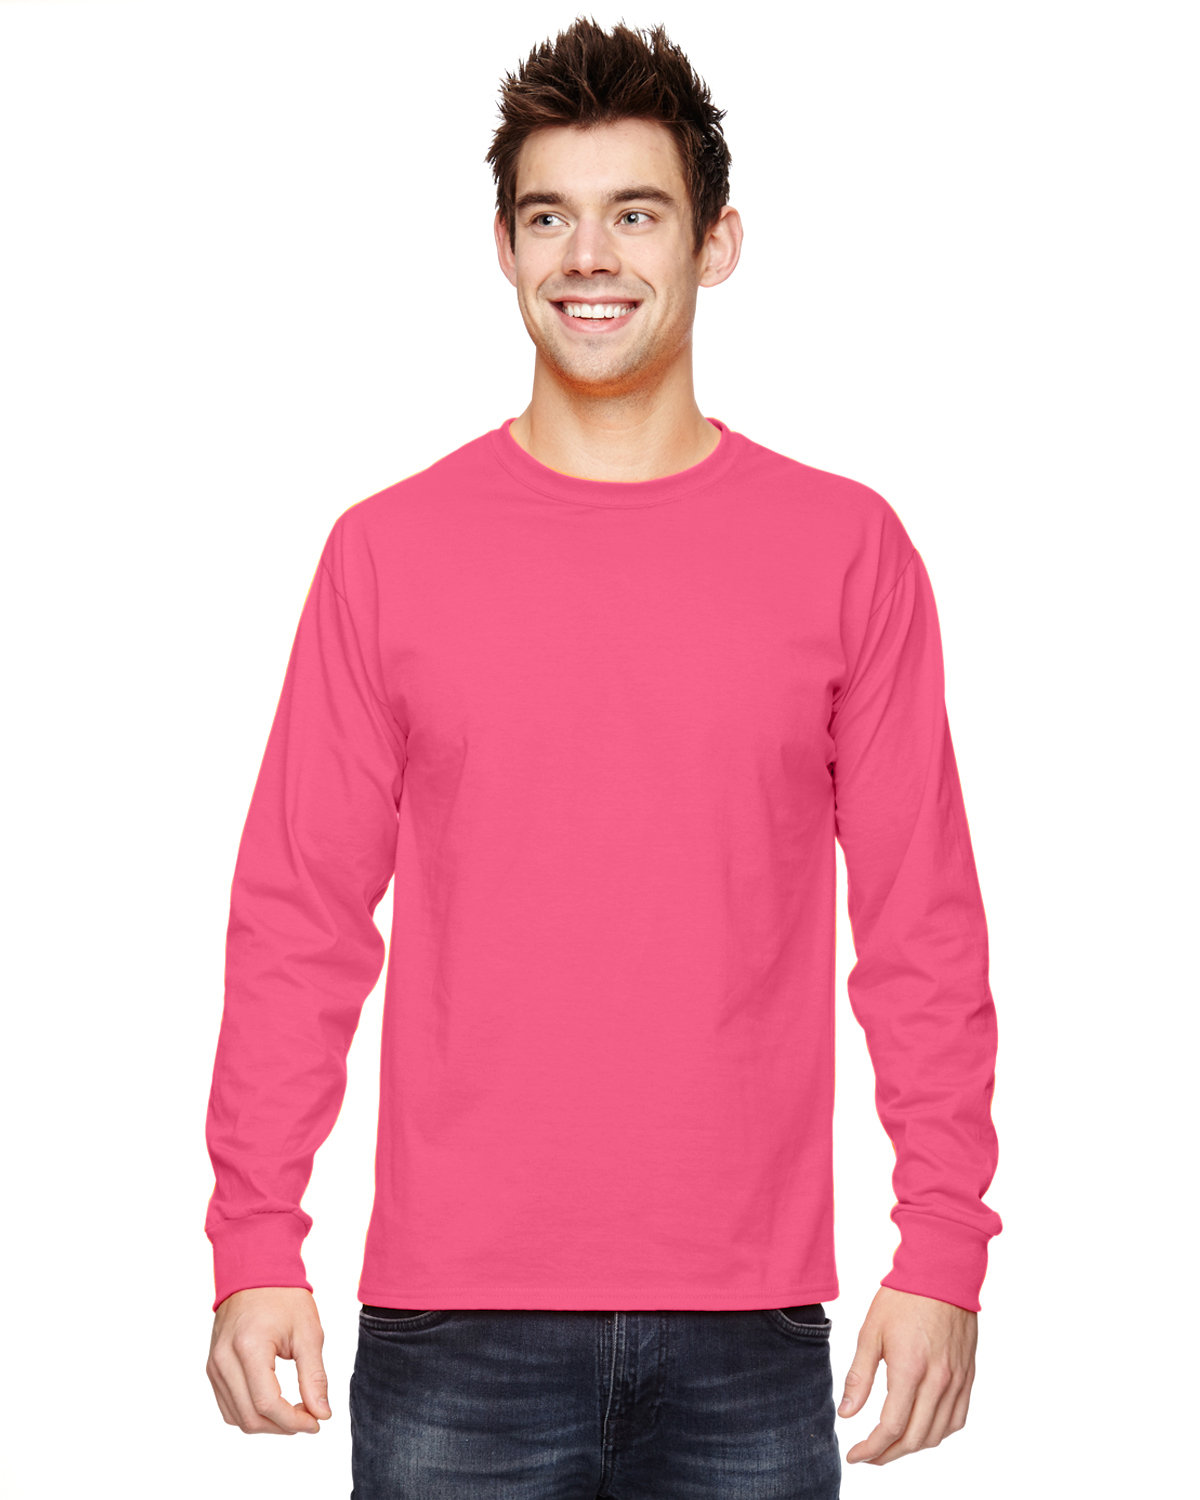 Fruit of the Loom Adult HD Cotton™ Long-Sleeve T-Shirt NEON PINK